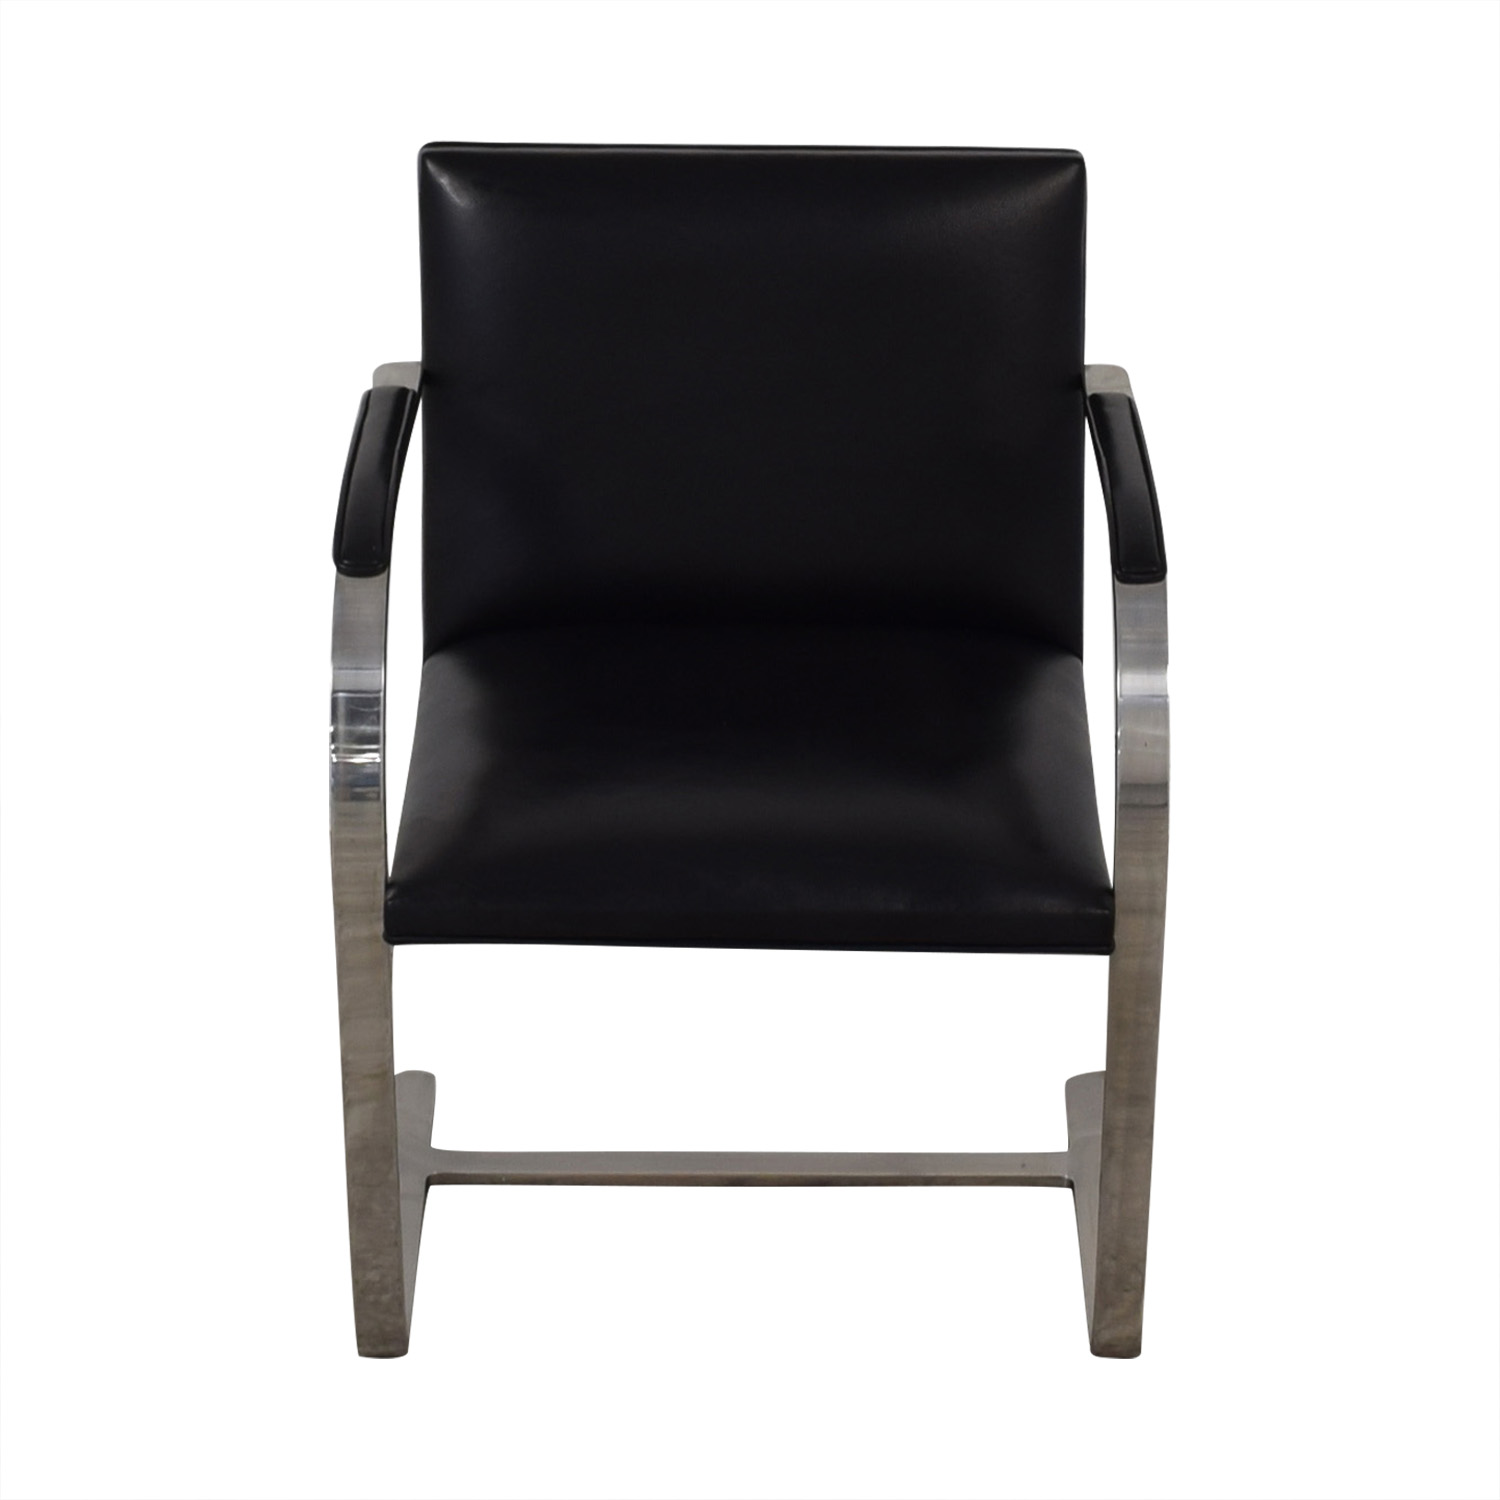 Knoll Knoll BRNO Chair coupon